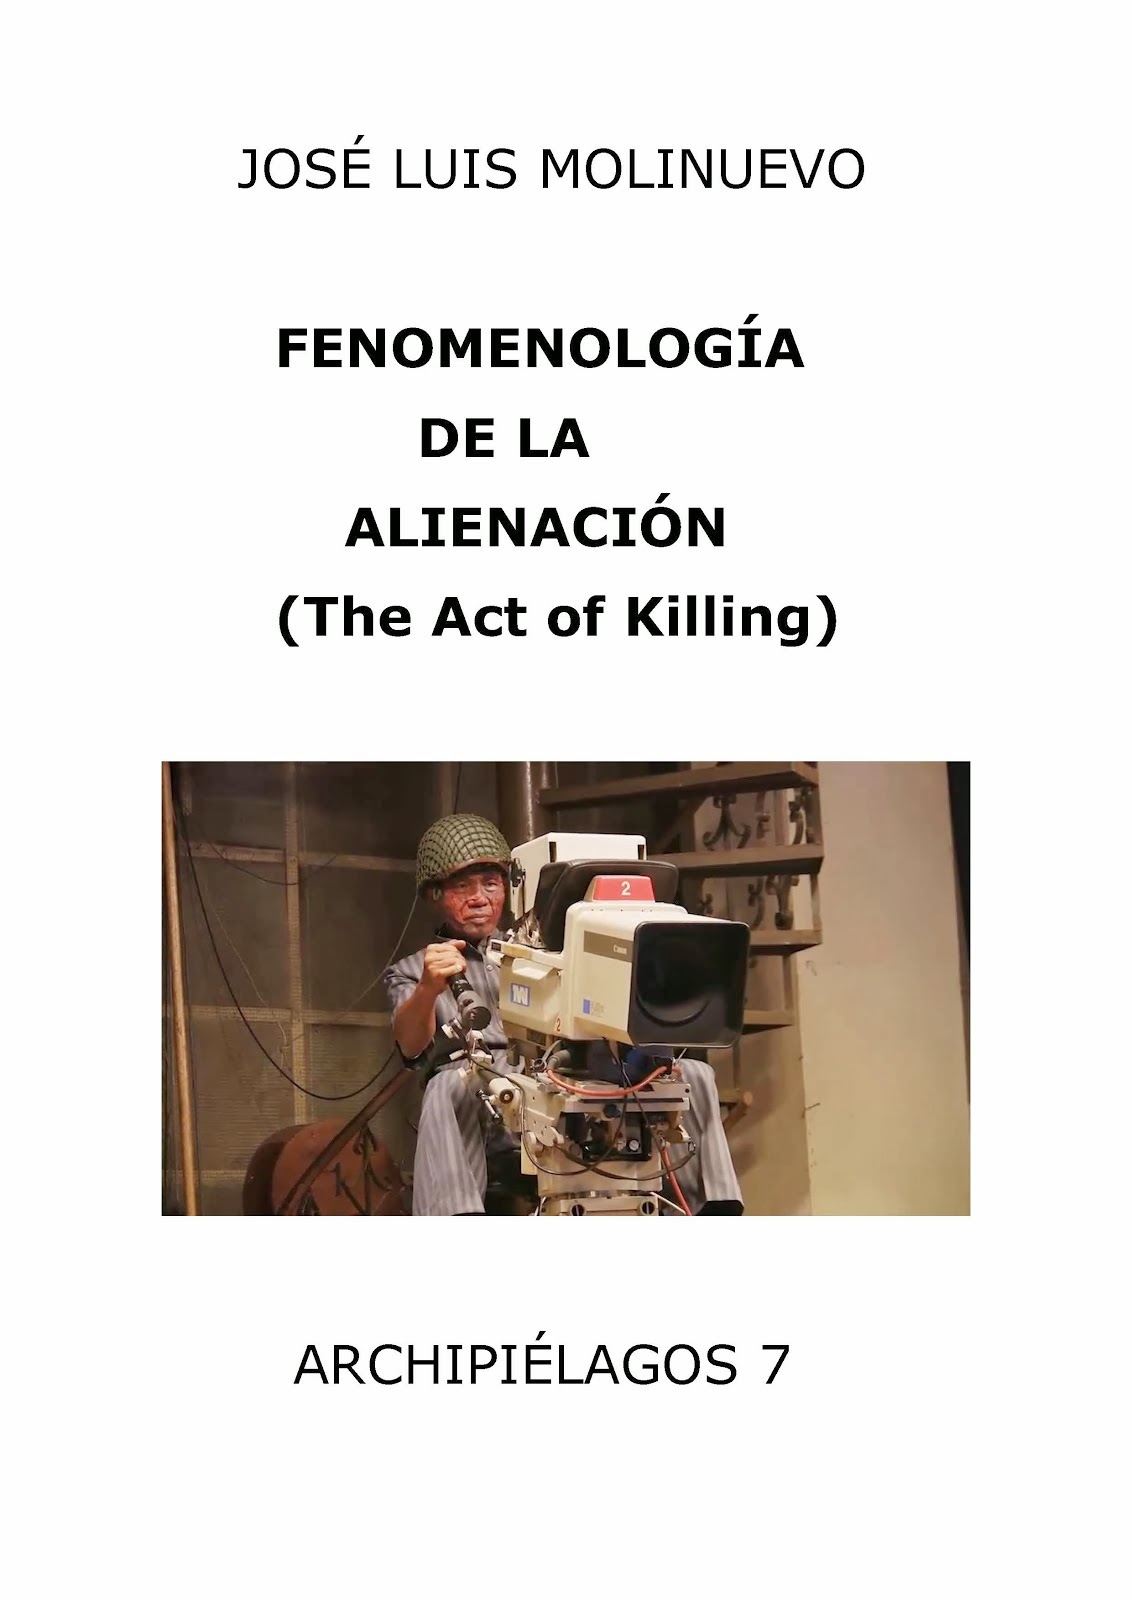 Fenomenología de la alienación. The Act of Killing